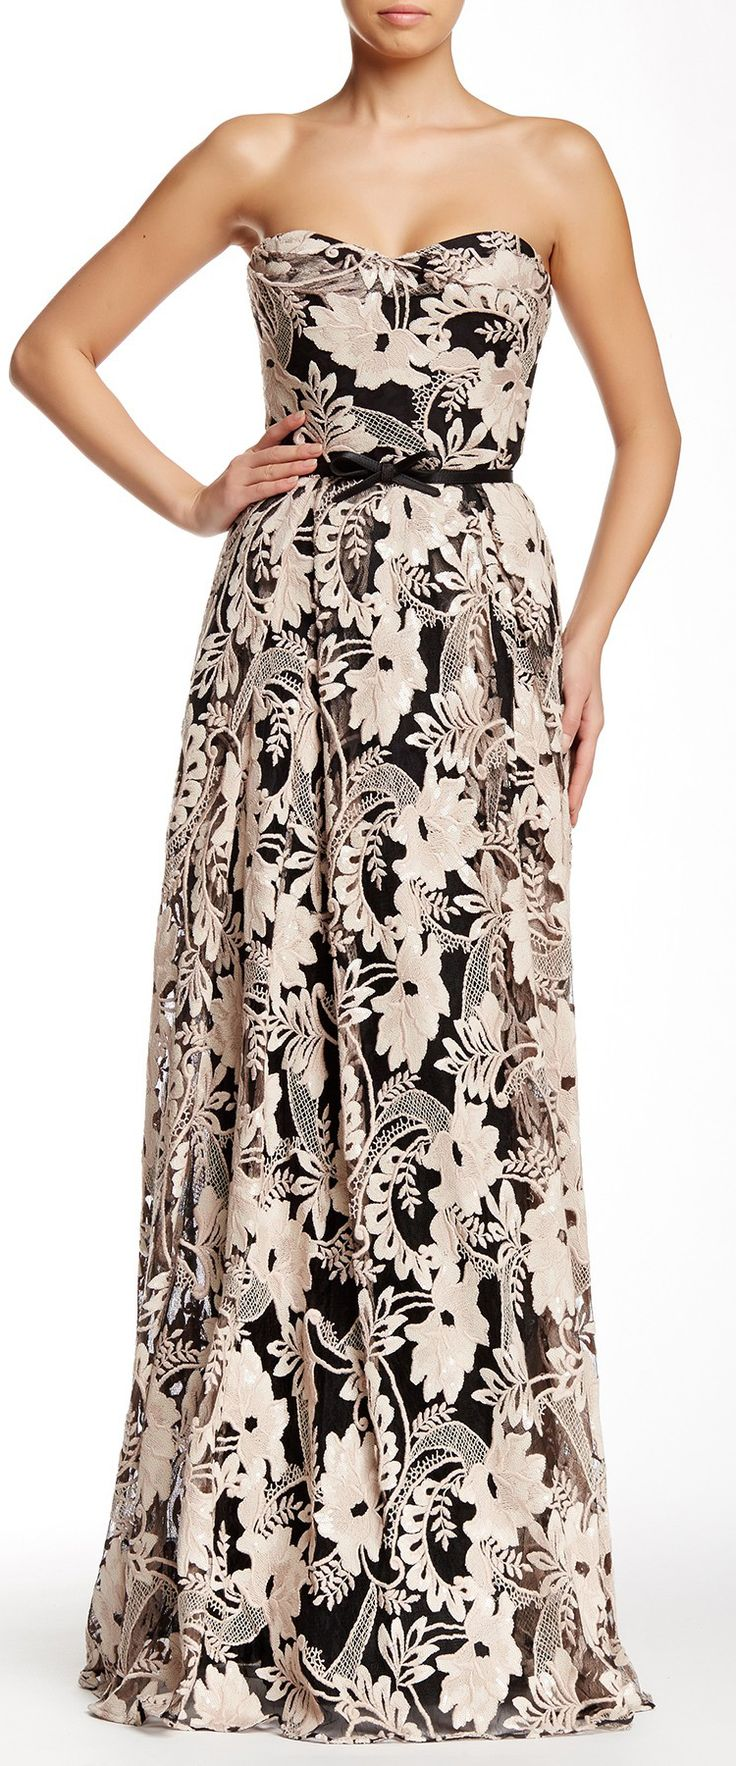 Embroidered gown // sponsored by Nordstrom Rack